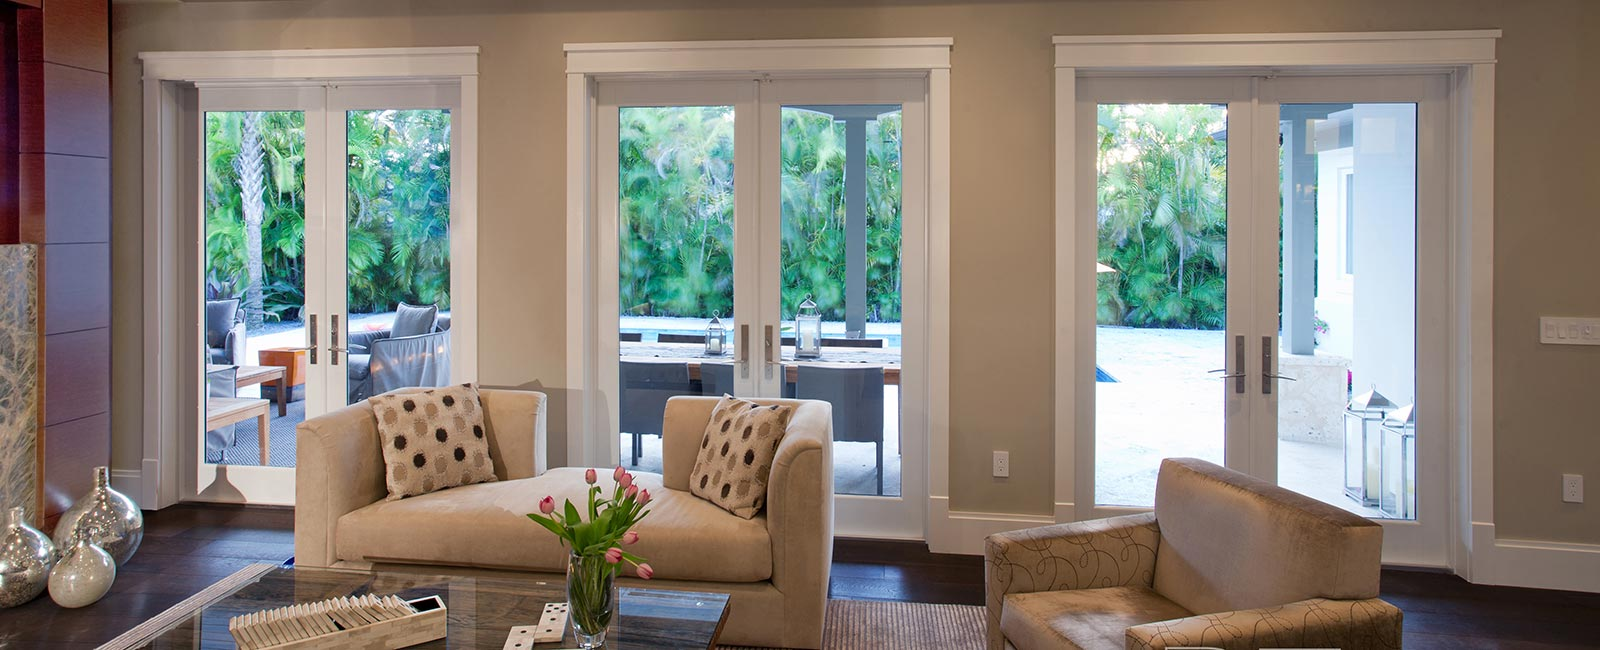 Impact Resistant French Doors in Palm Beach Home